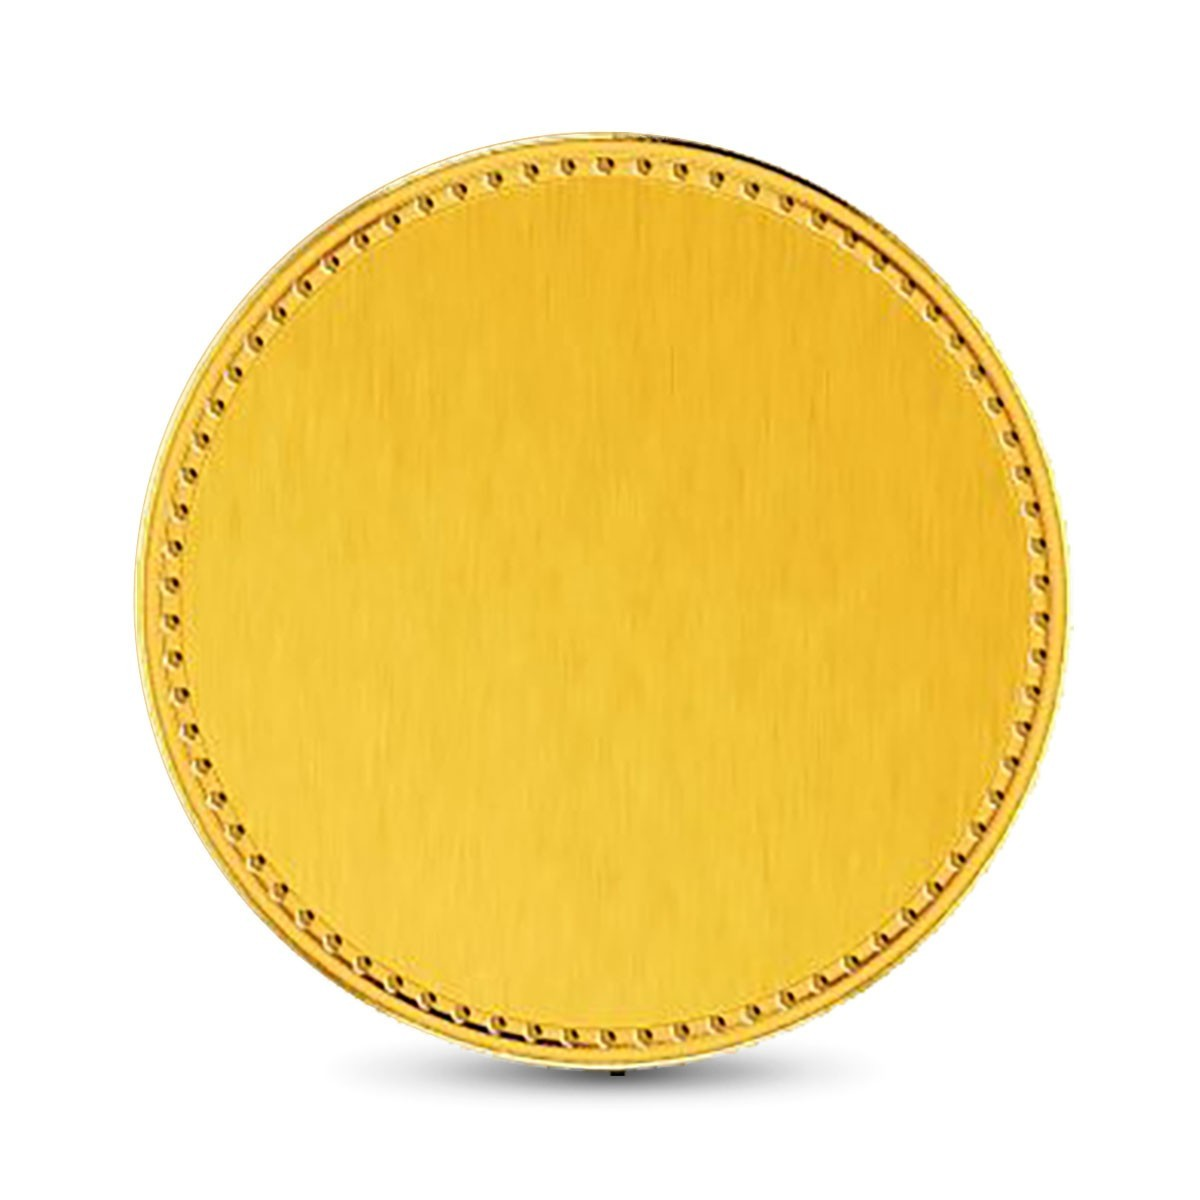 1 Gram 22Kt Hallmarked Plain Gold Coin